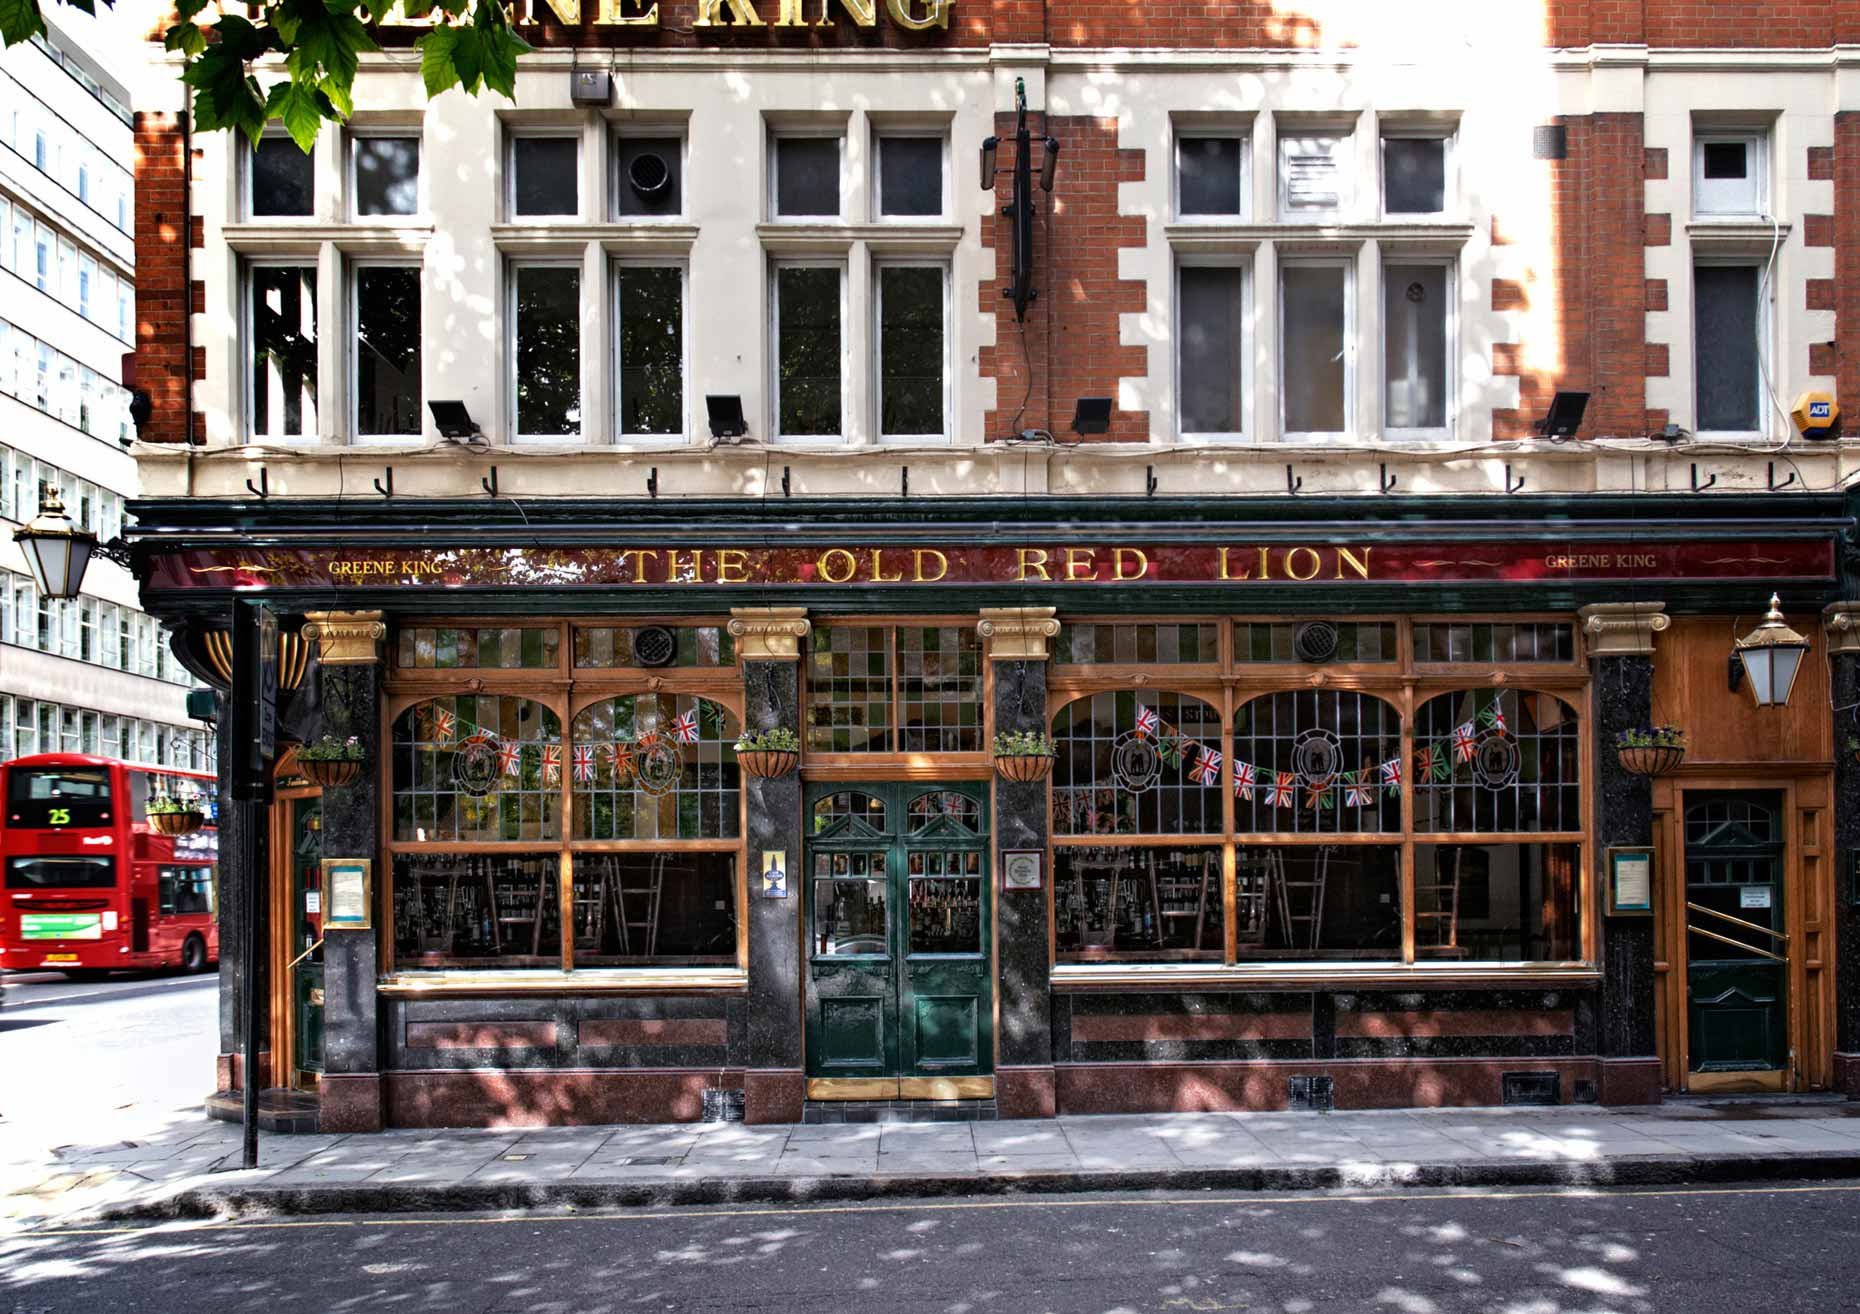 beeldbewerker-london-pub-old-red-lion-tjeerd-kruse-london pub-old red lion-beeldbewerking-vrij-werk